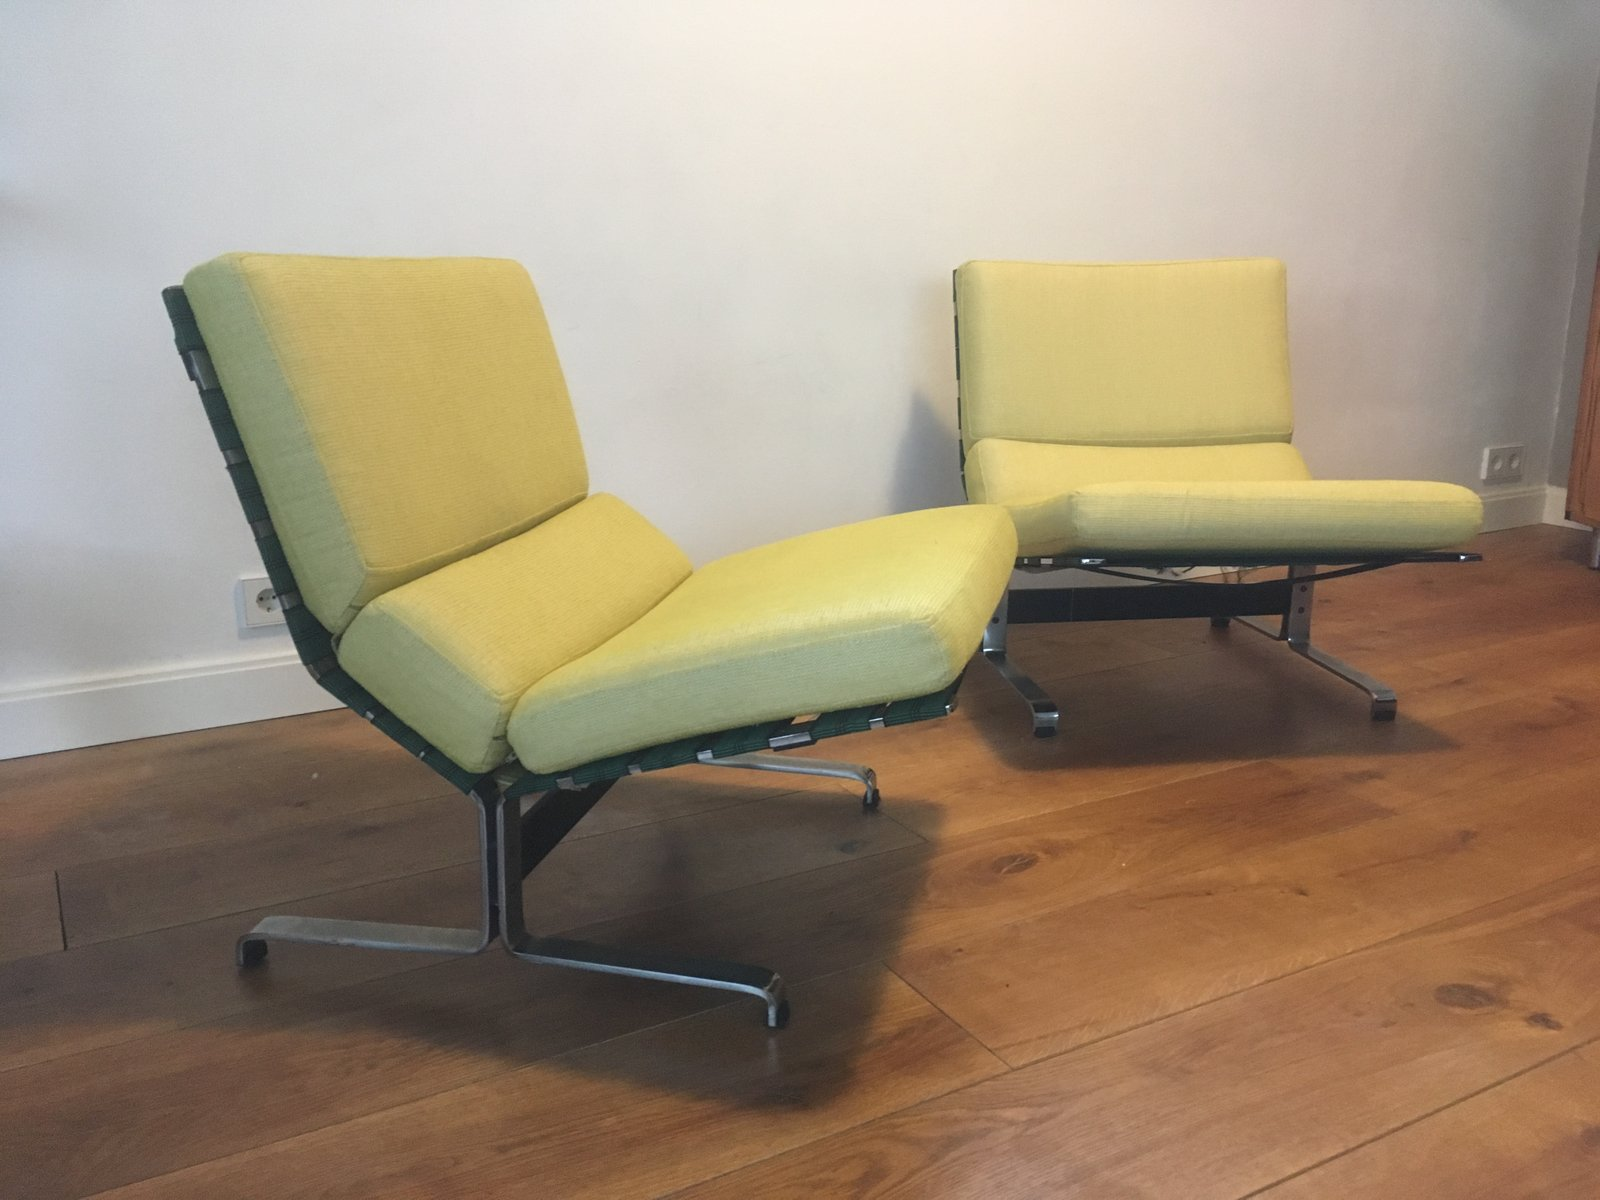 lounge chairs by etienne fermigier for meuble et fonction 1960s set of 2 for sale at pamono. Black Bedroom Furniture Sets. Home Design Ideas